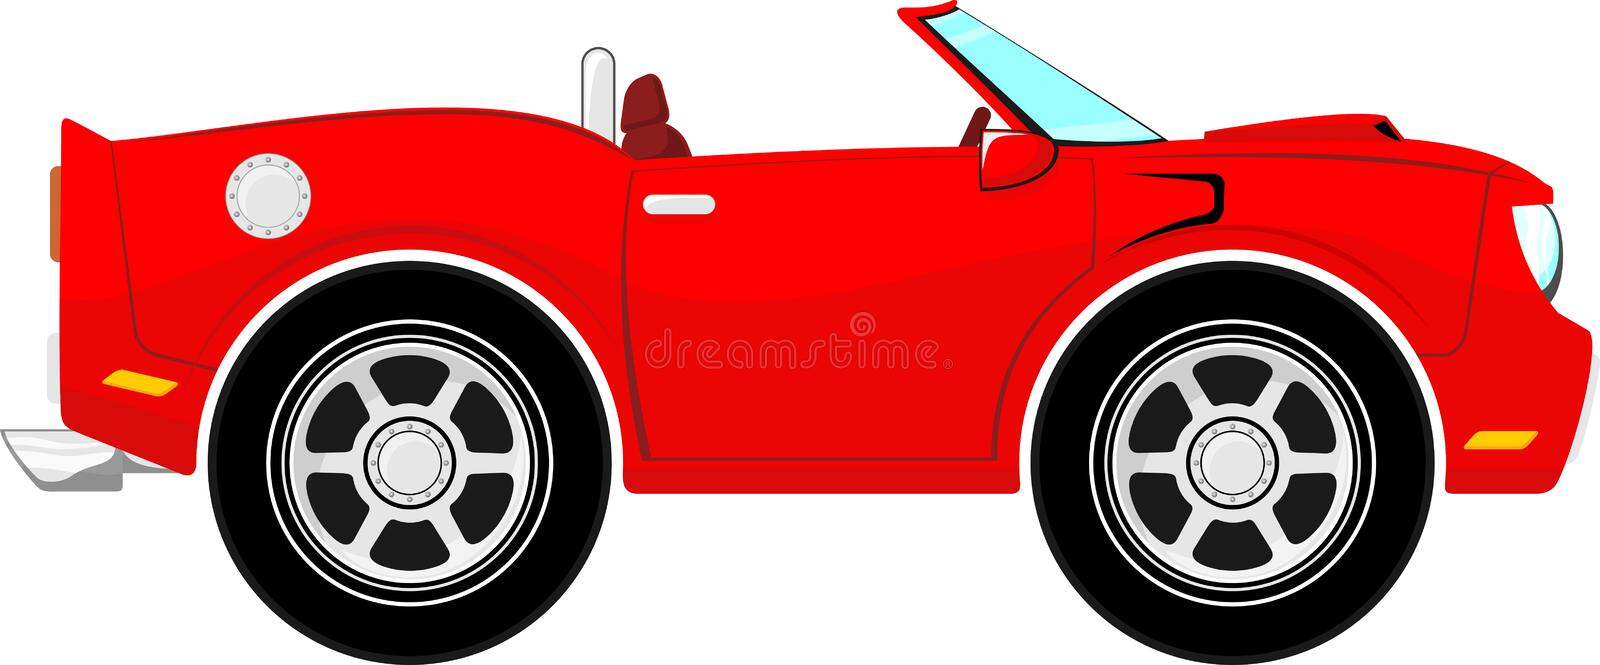 Automobile convertibile rossa divertente royalty illustrazione gratis